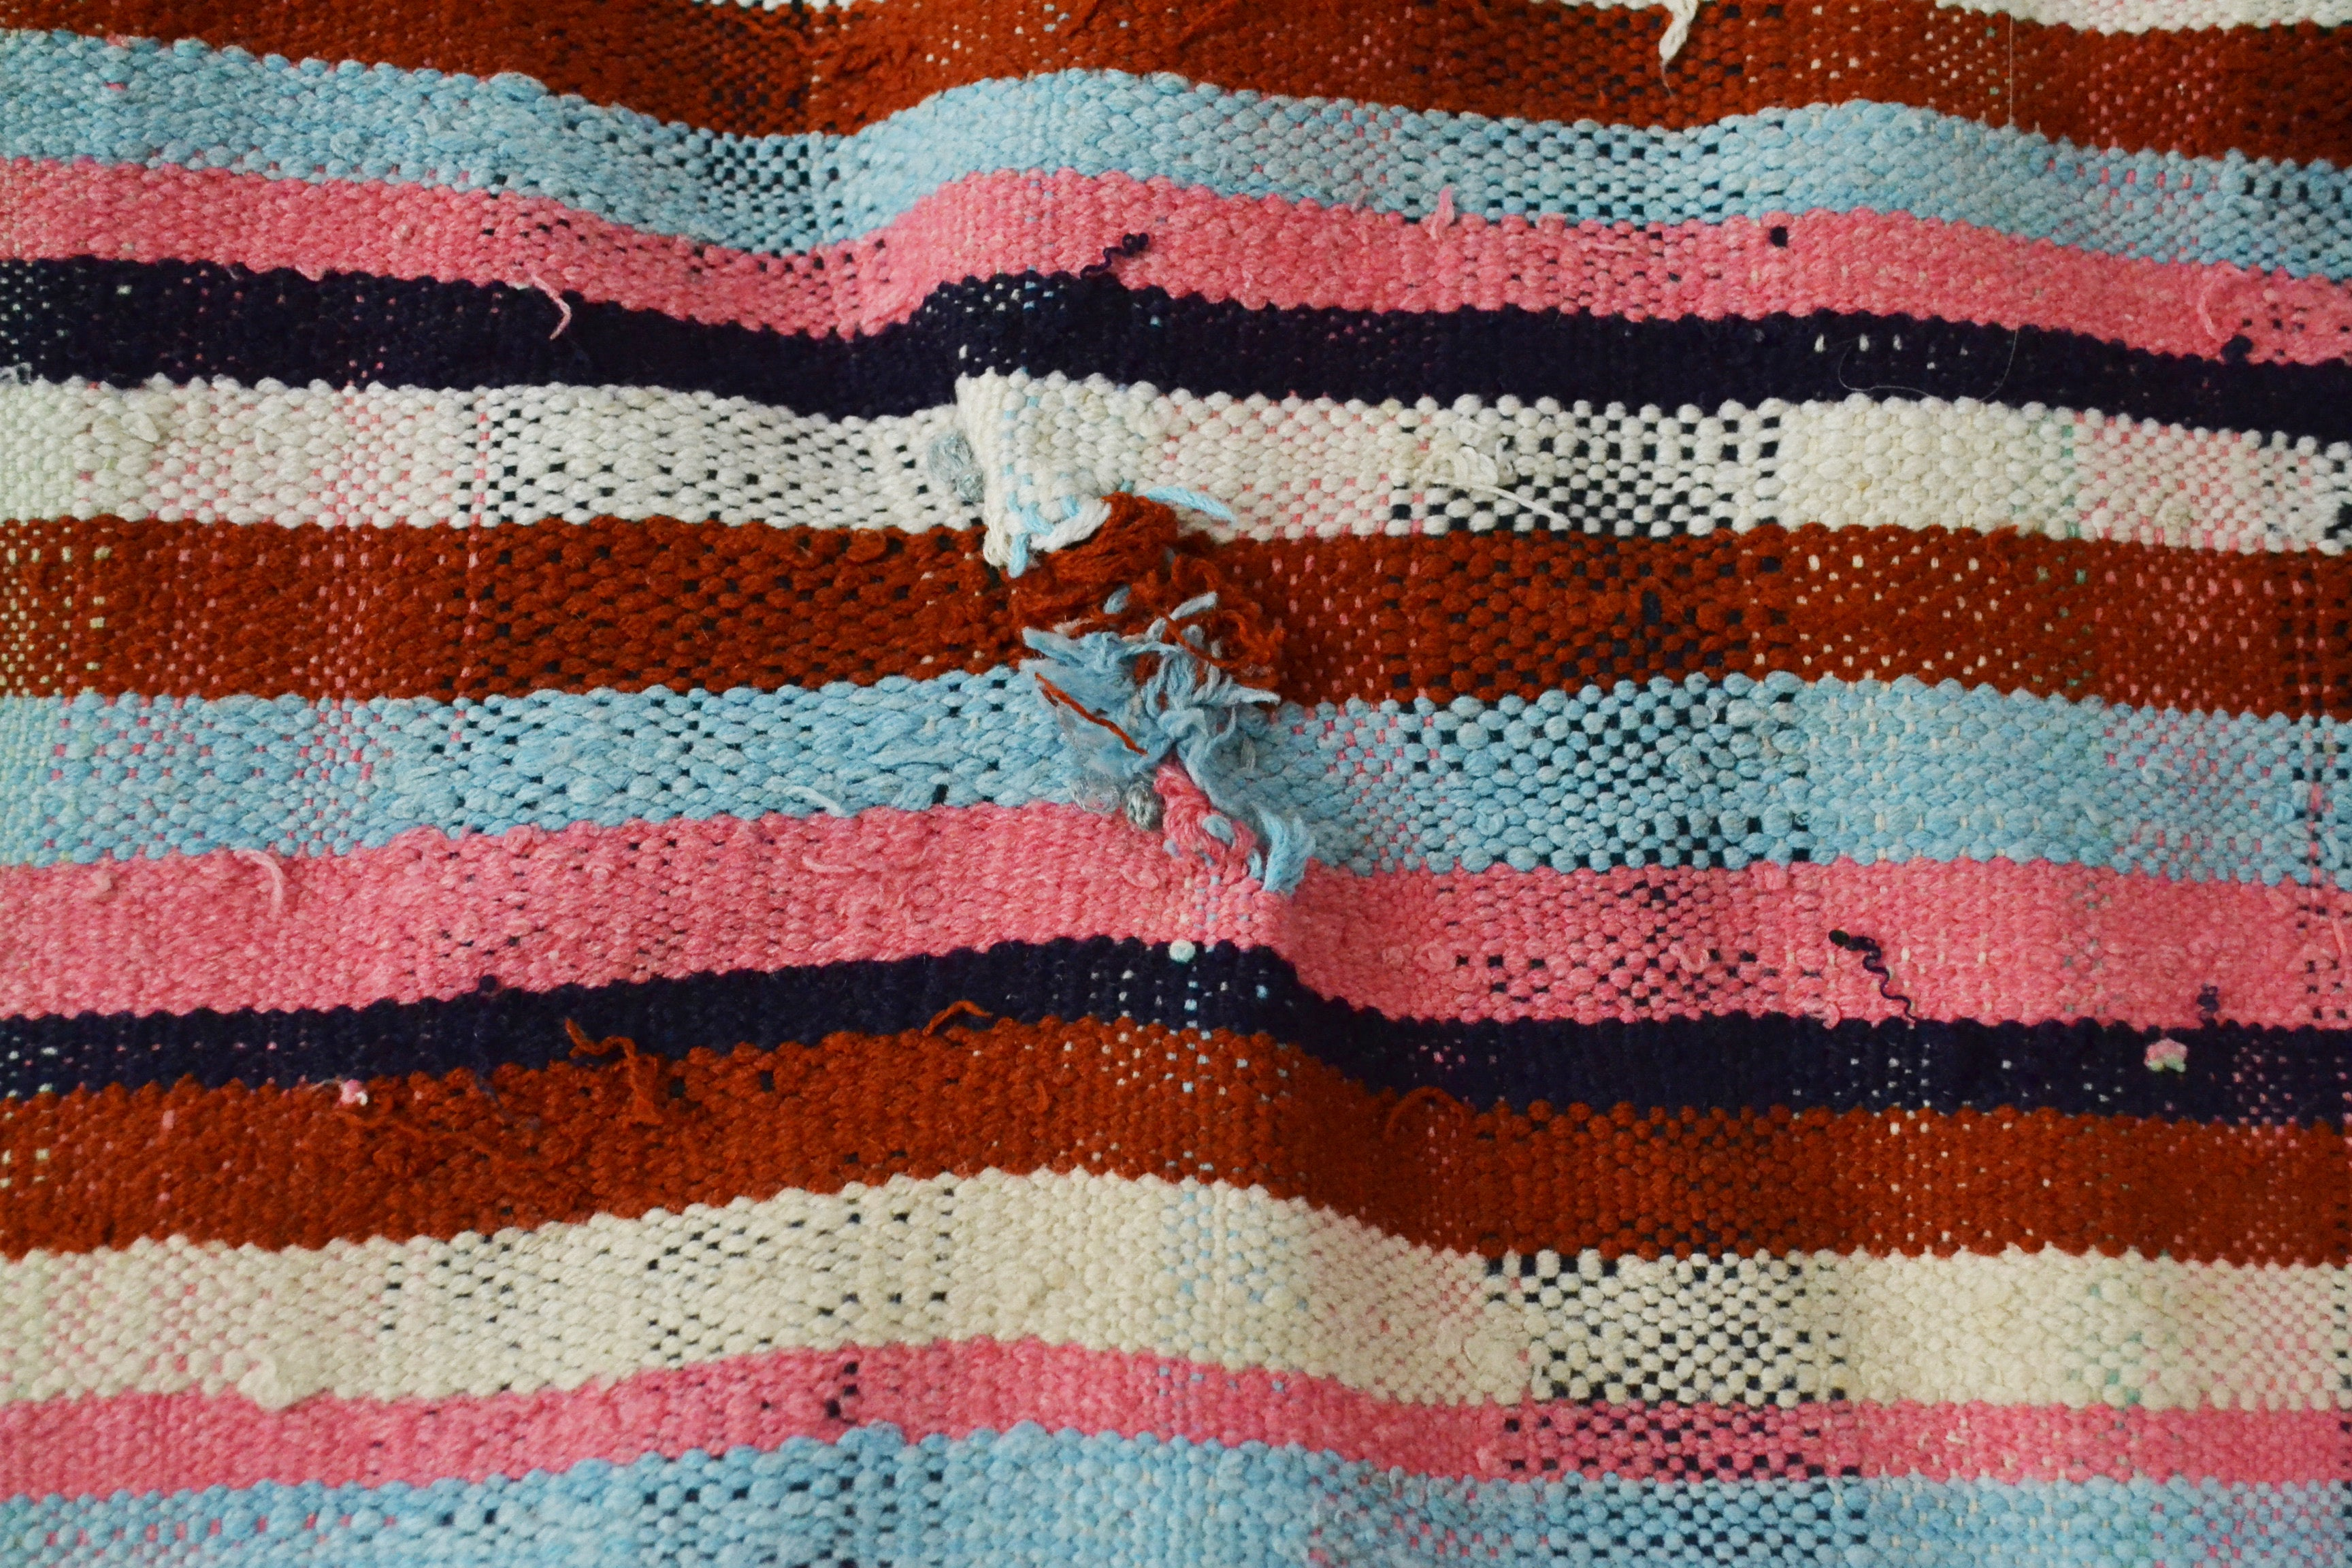 Vintage Moroccan Striped and Fringed Cotton Blanket